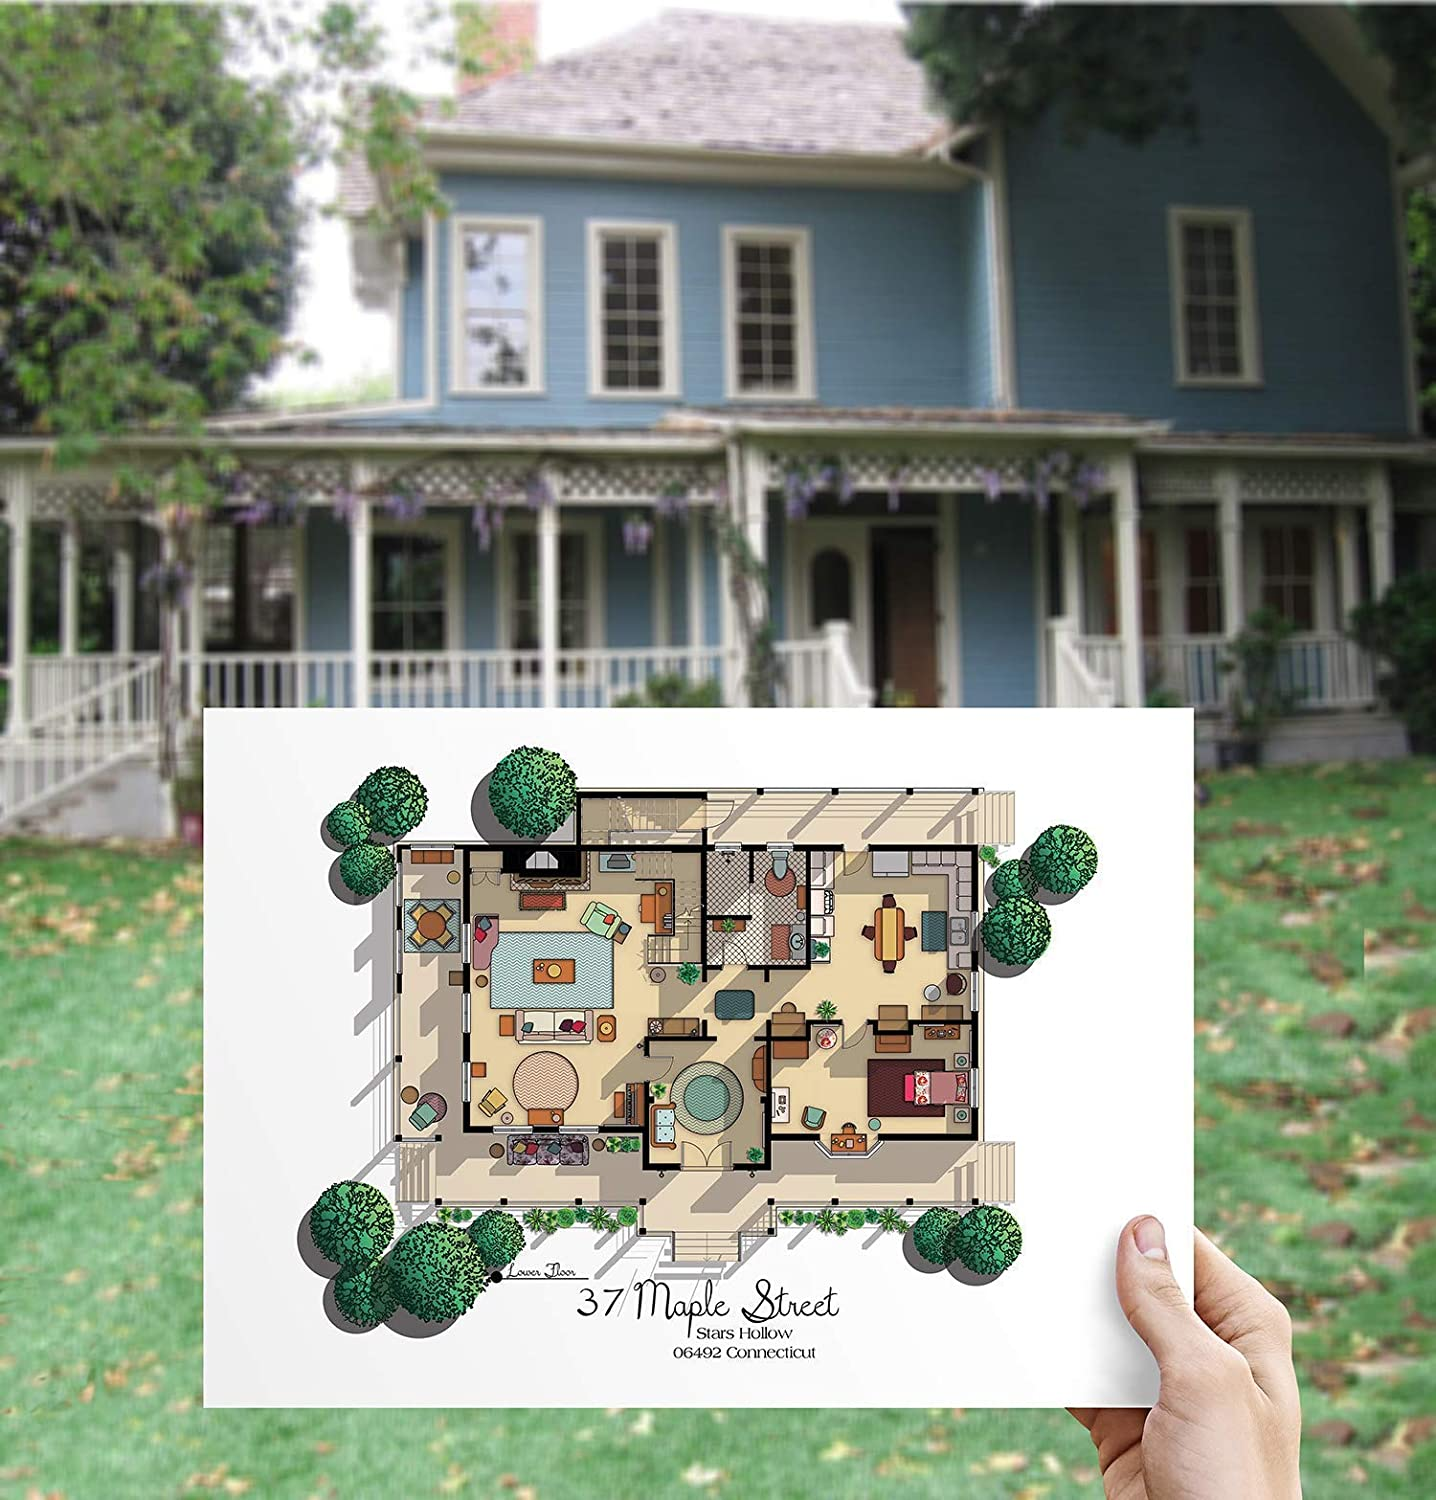 Amazon Com Gilmore Girls House Floor Plan Lorelai And Rory S House Layout Gilmore Girls Poster Gift For Gilmore Girls Fan Gilmore Girls Print Ground Floor Plan With Rory S Room Handmade